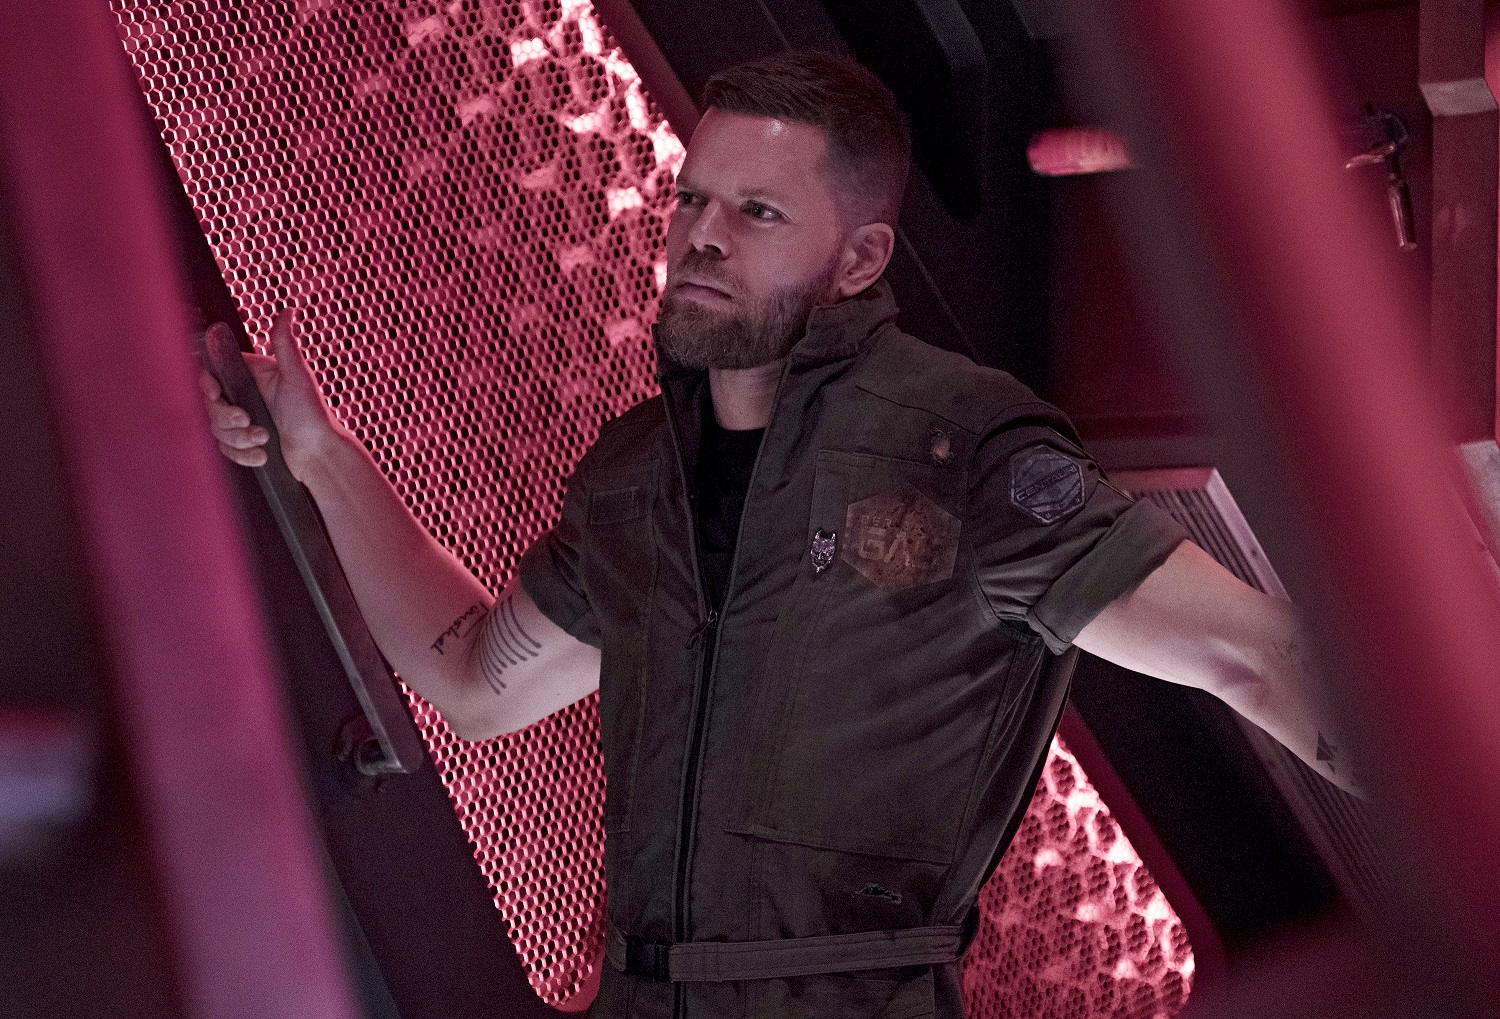 Wes Chatham as Amos Burton on The Expanse